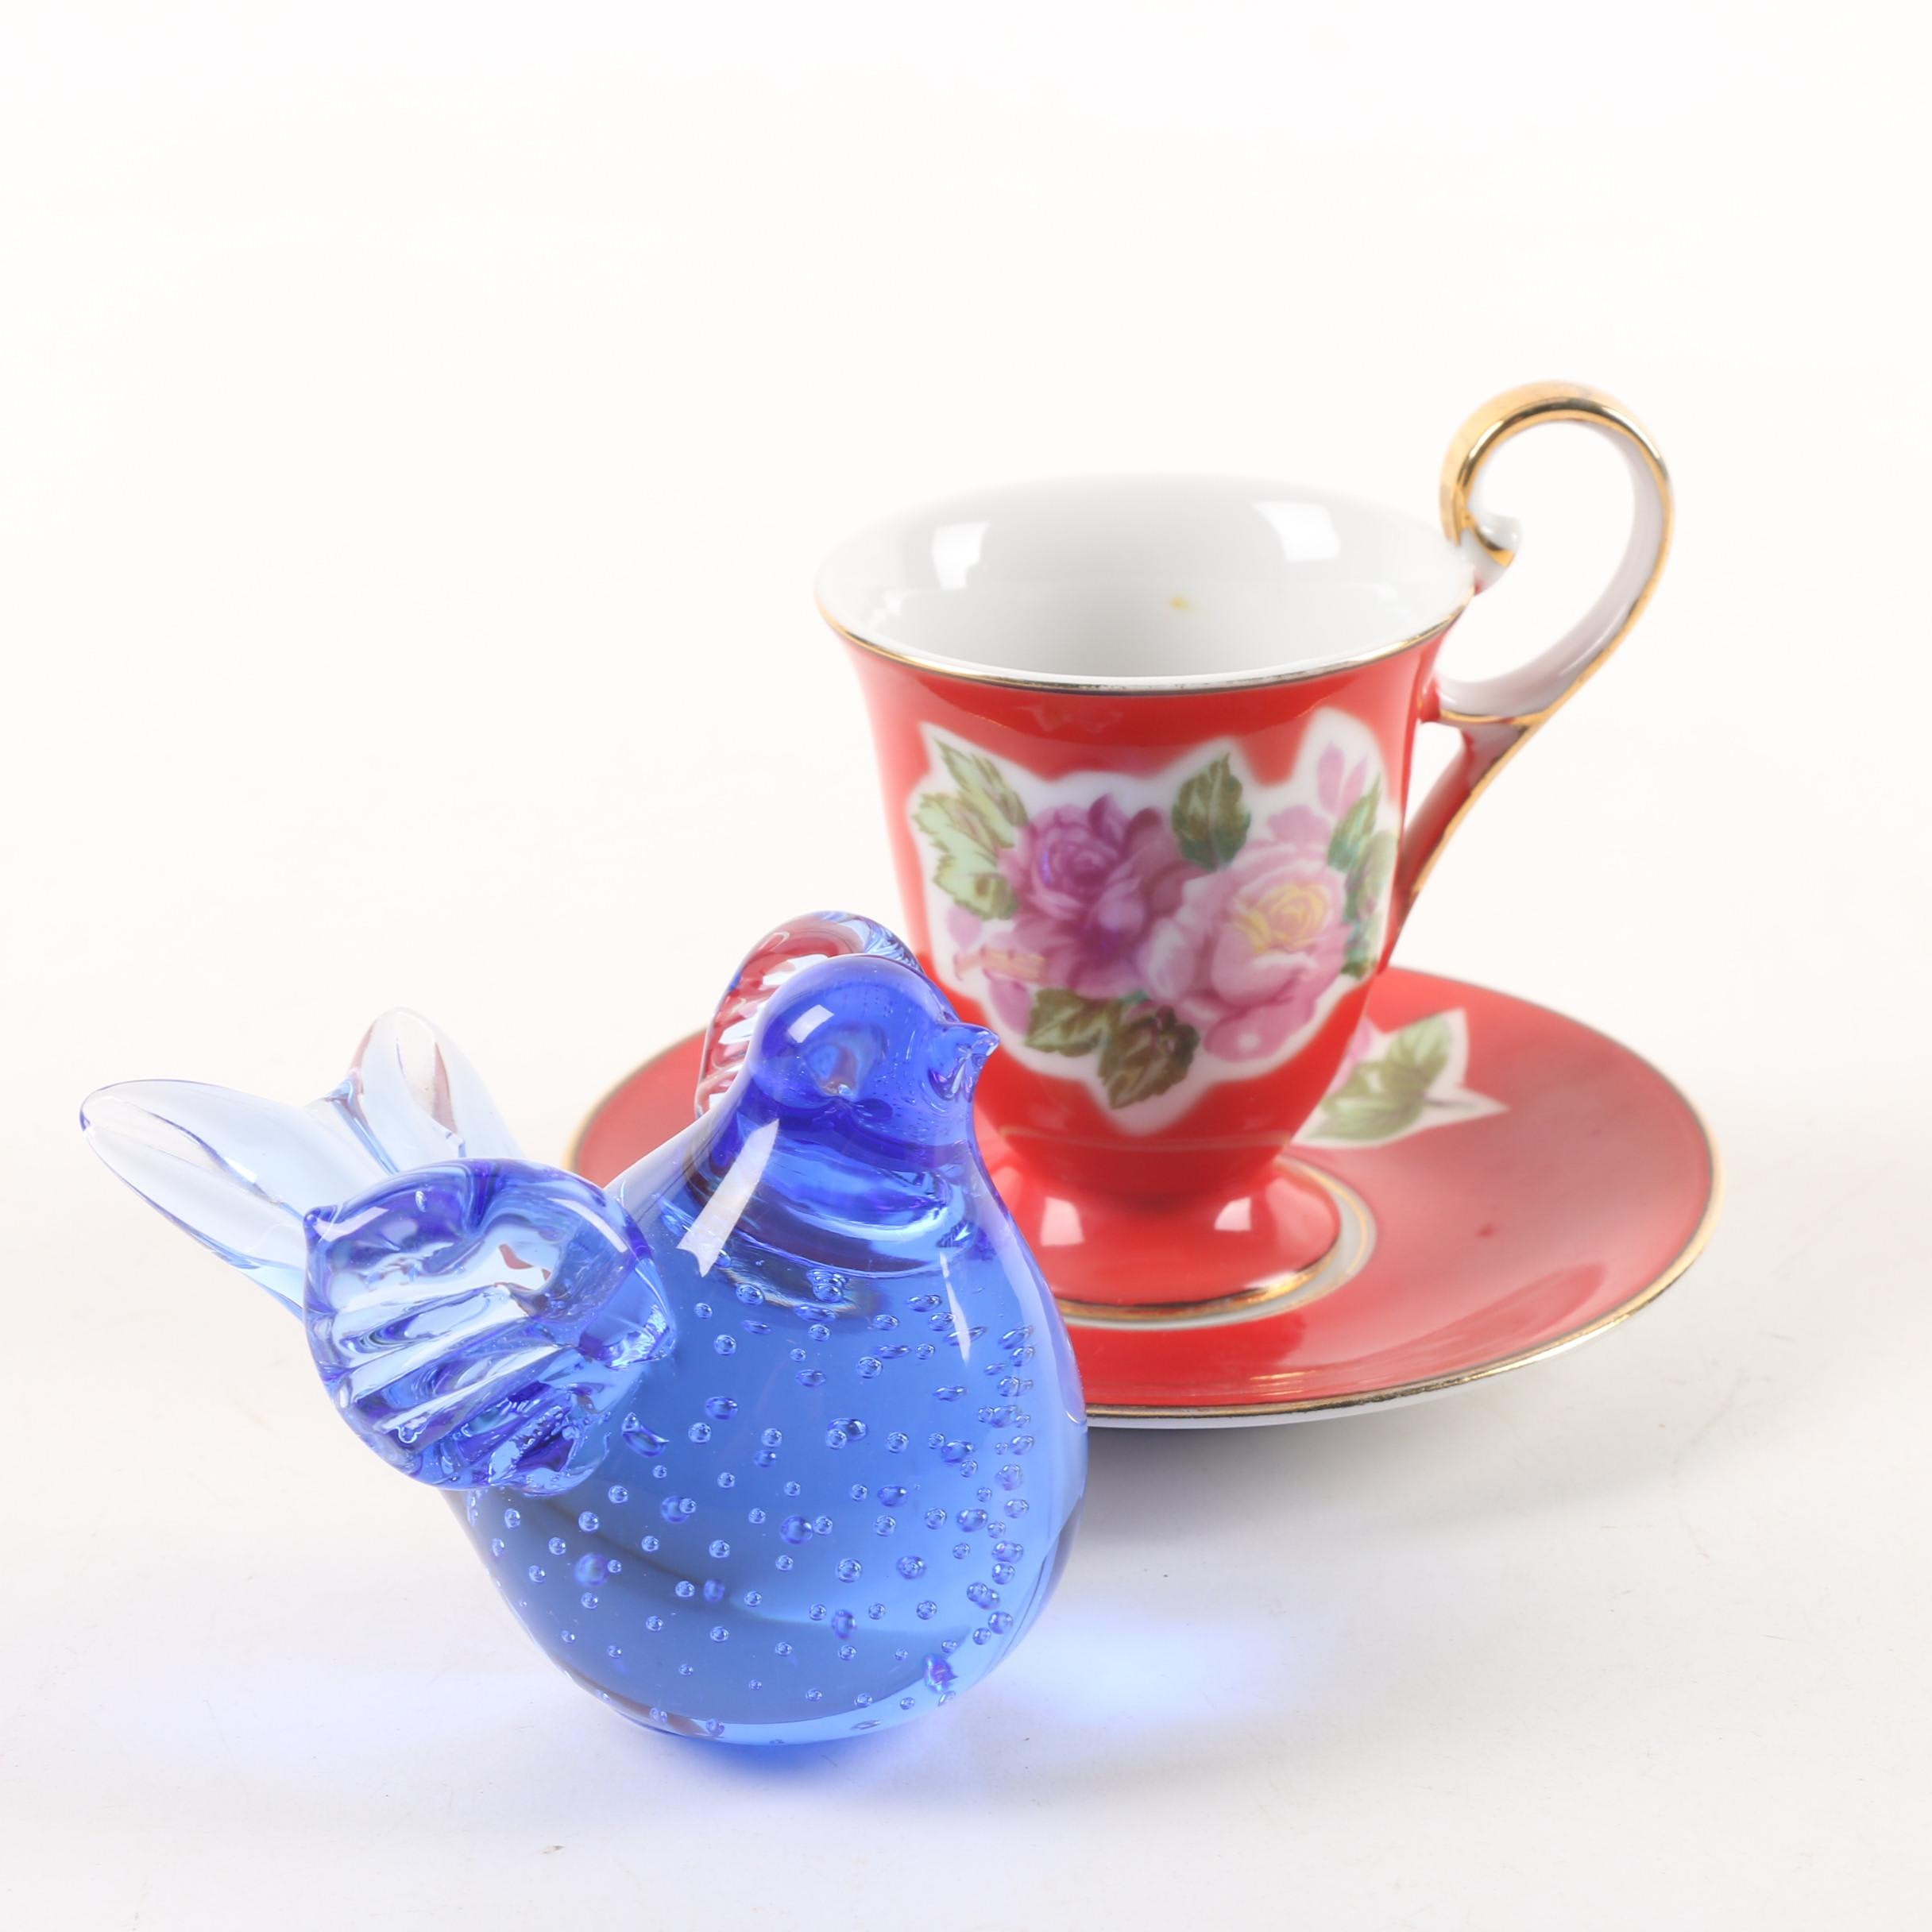 Enesco Art Glass Bird Paperweight and Porcelain Japanese Teacup with Saucer